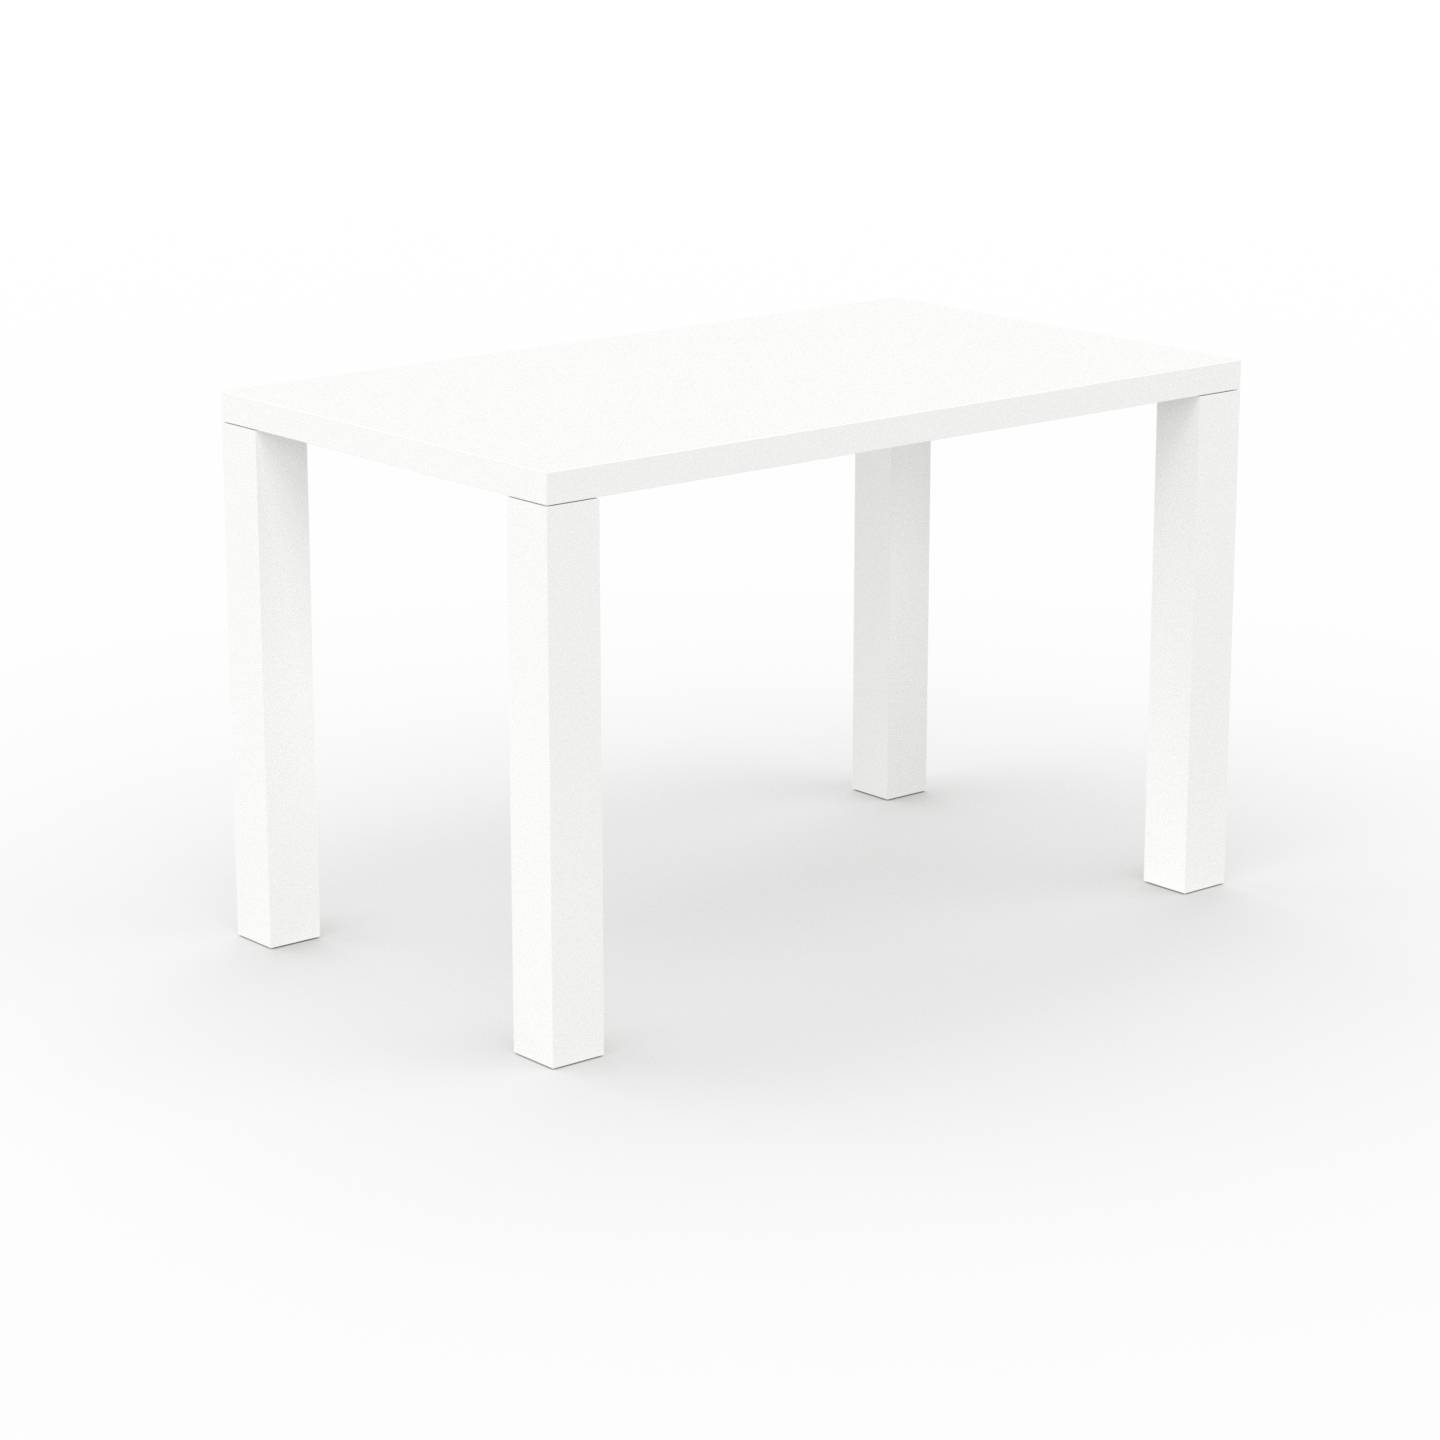 MYCS Bureau - Blanc, design contemporain, table de travail, fonctionnelle - 120 x 76 x 70 cm, modulable